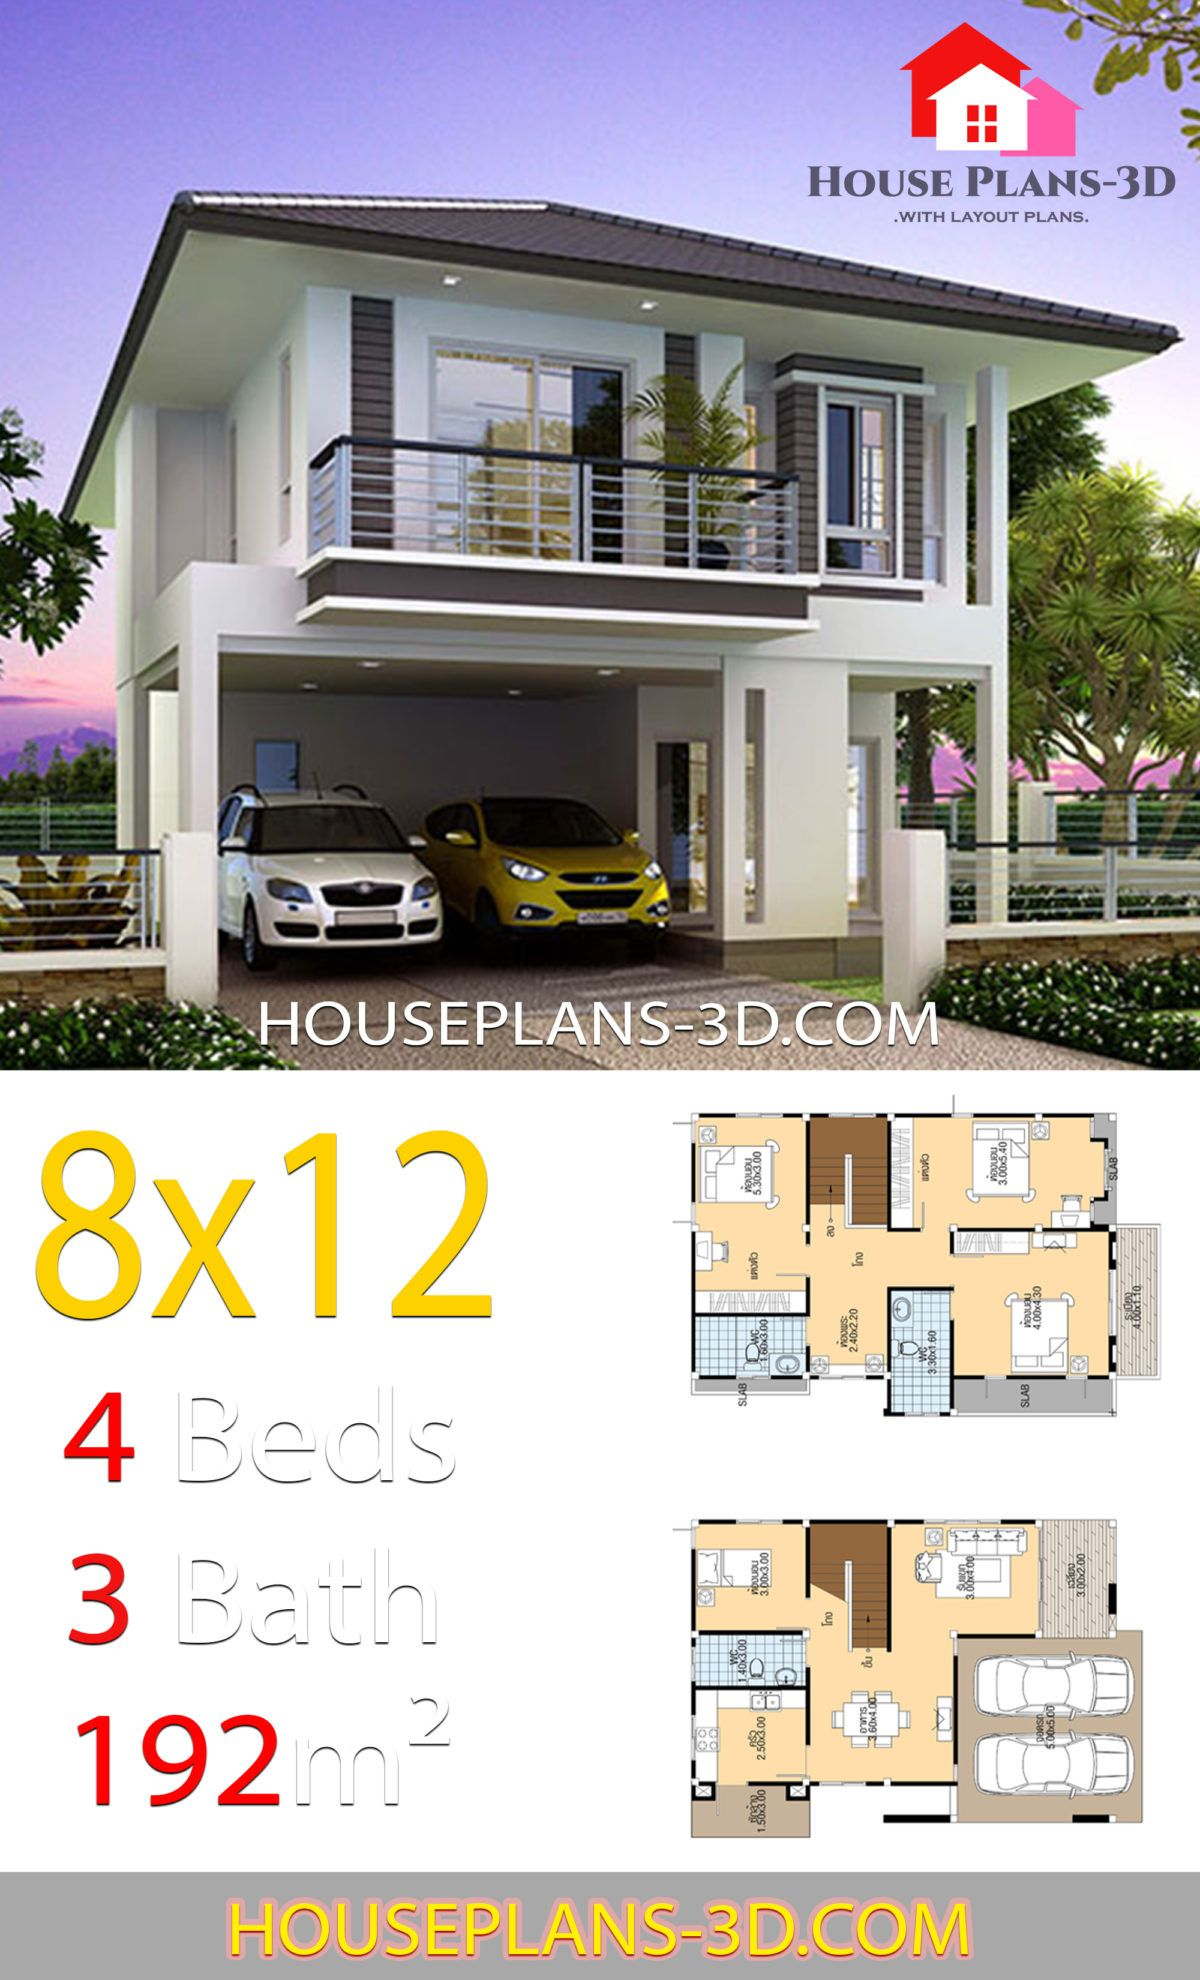 Find Your House Plans Below House Plans 3d Building Plans House House Plans Model House Plan